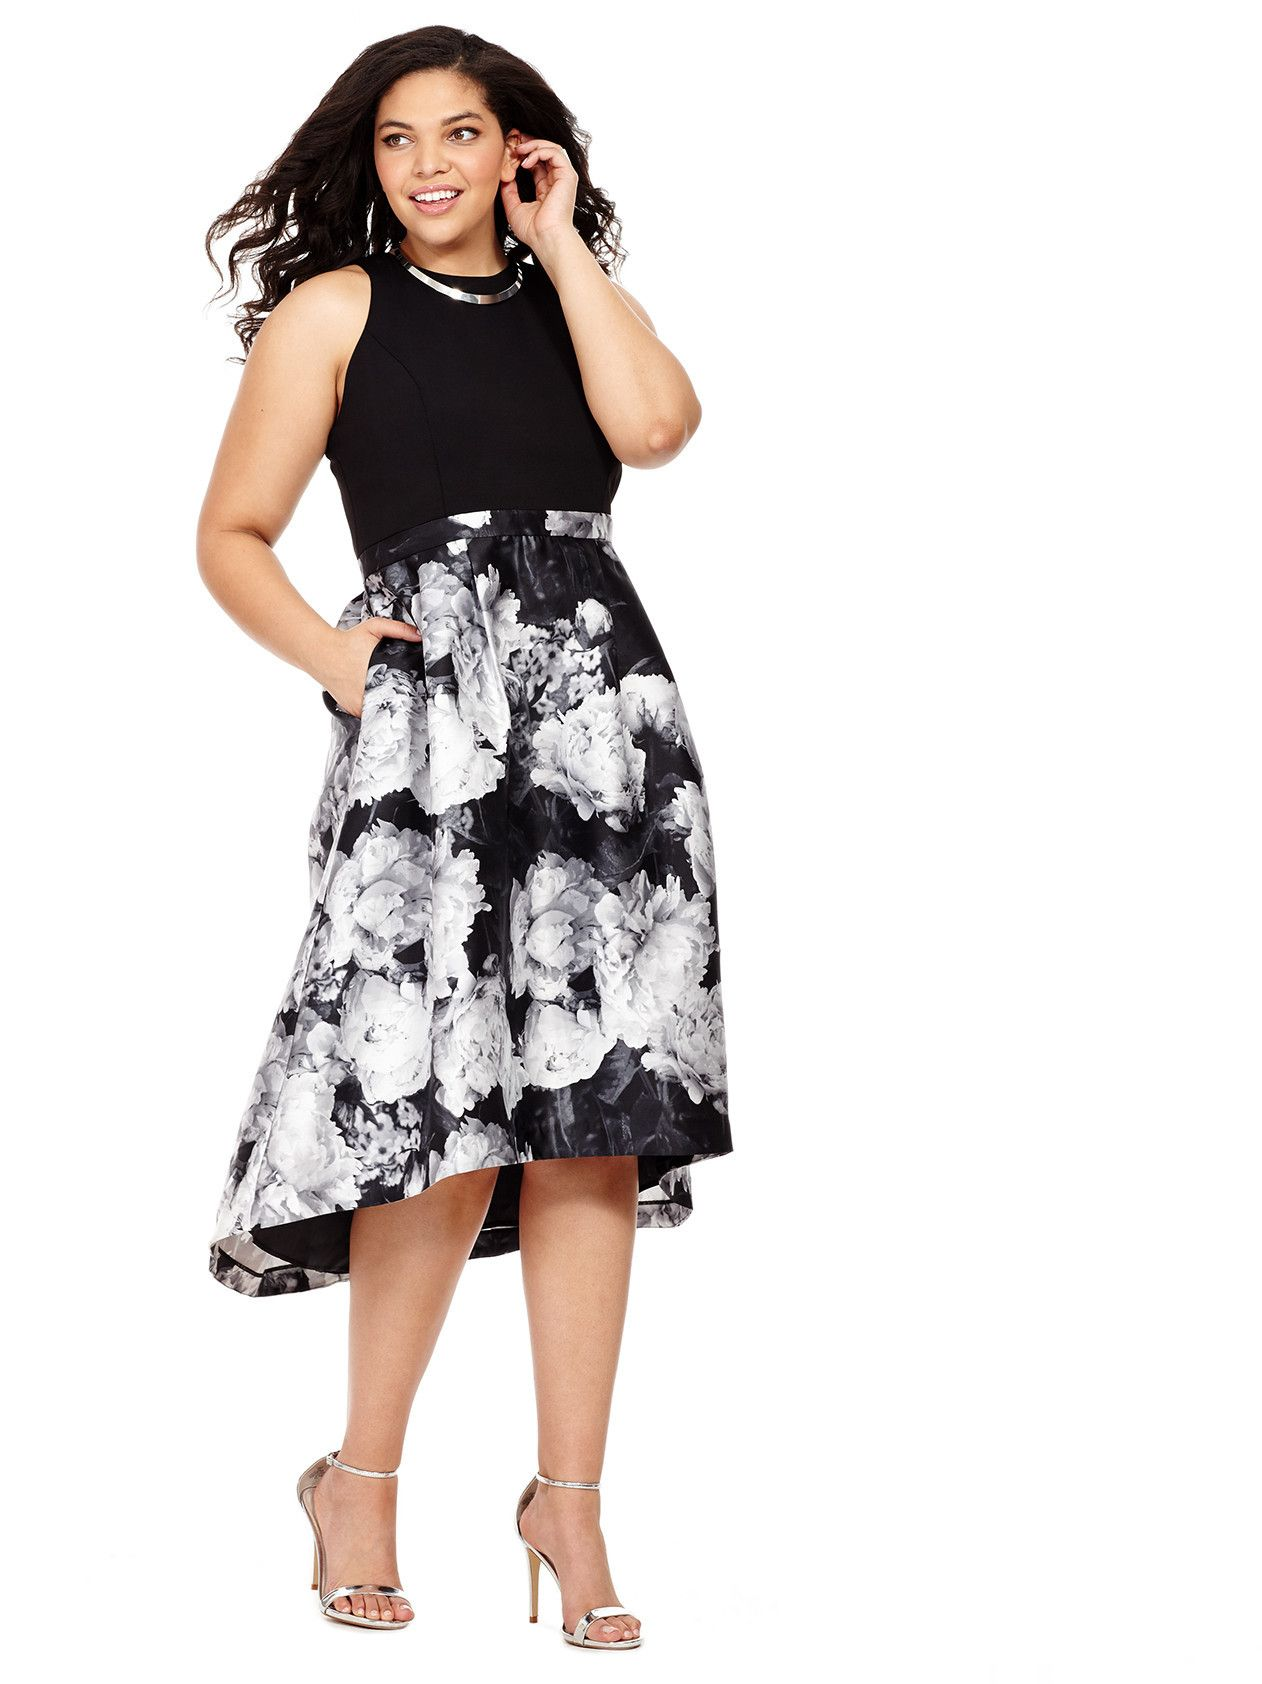 City Chic Victoria Dress Gwynnie Bee Clothes I Need Choices